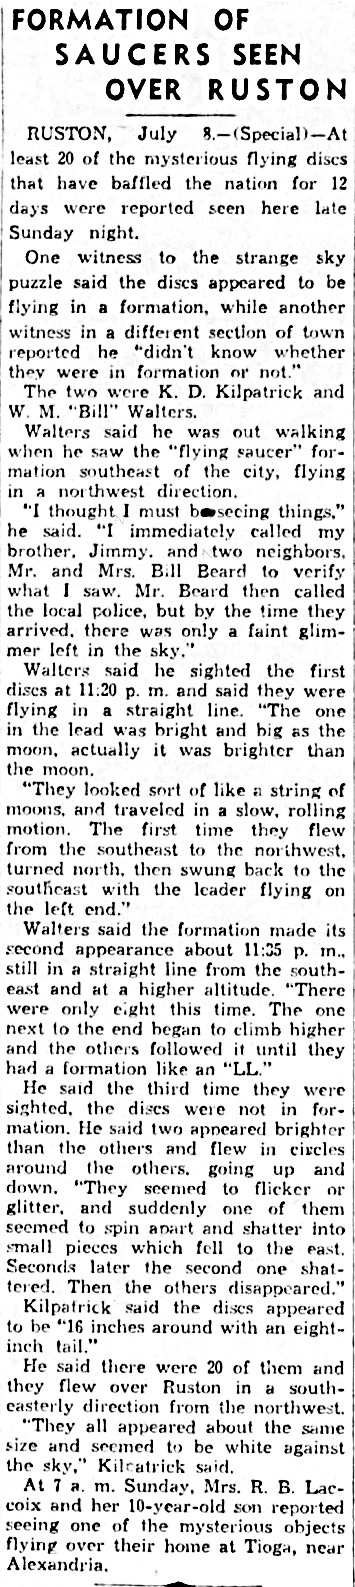 Formation of Saucers Seen Over Ruston - The Monroe News-Star (Monroe, Louisiana) 7-8-1947